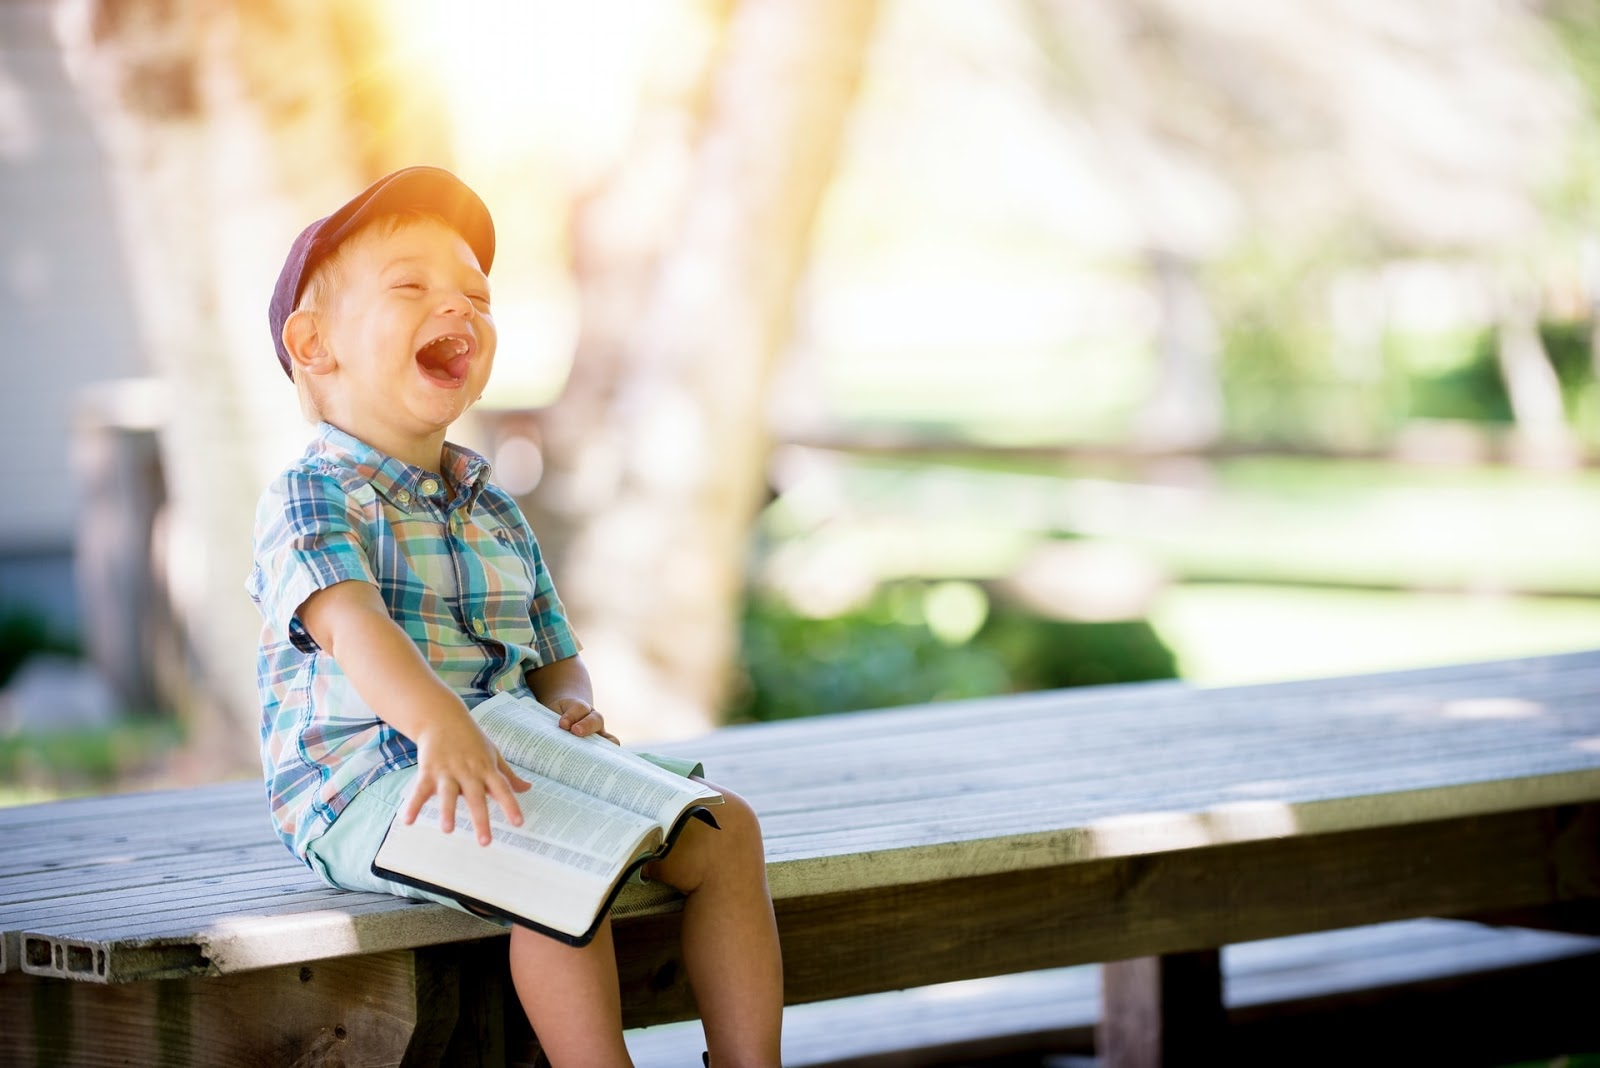 young boy laughing and sitting on a table with a bible